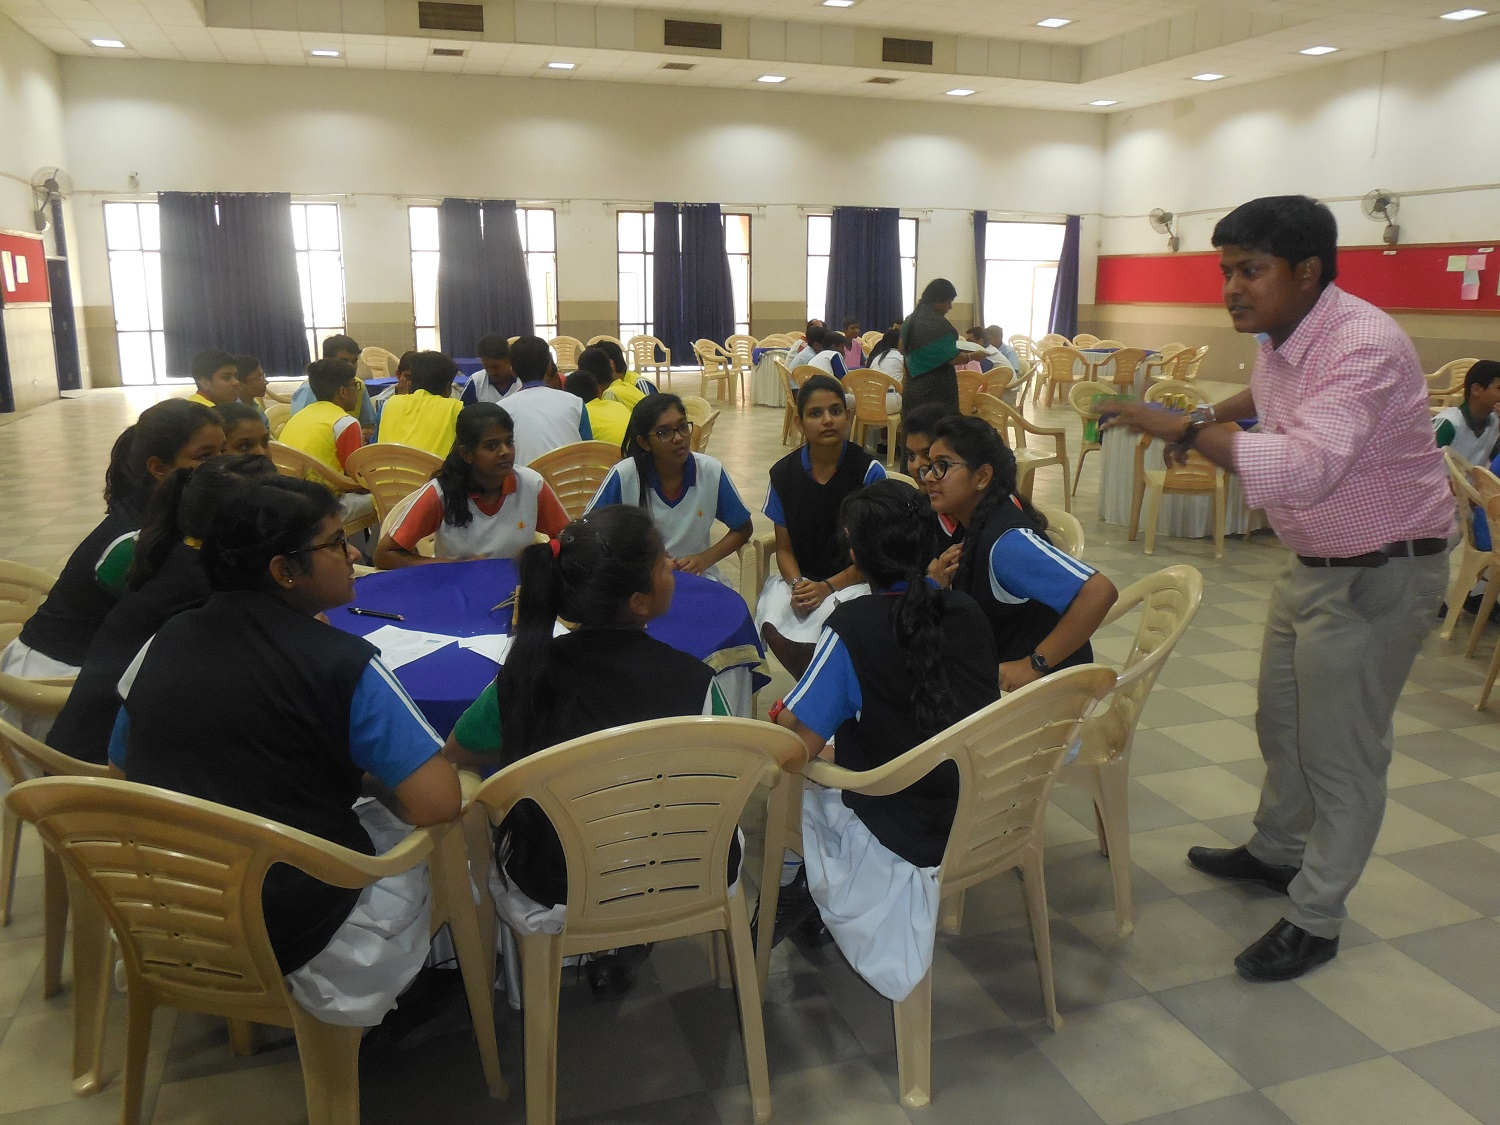 Students attend 'Playnomics' workshop by IBSF (University of London) officials